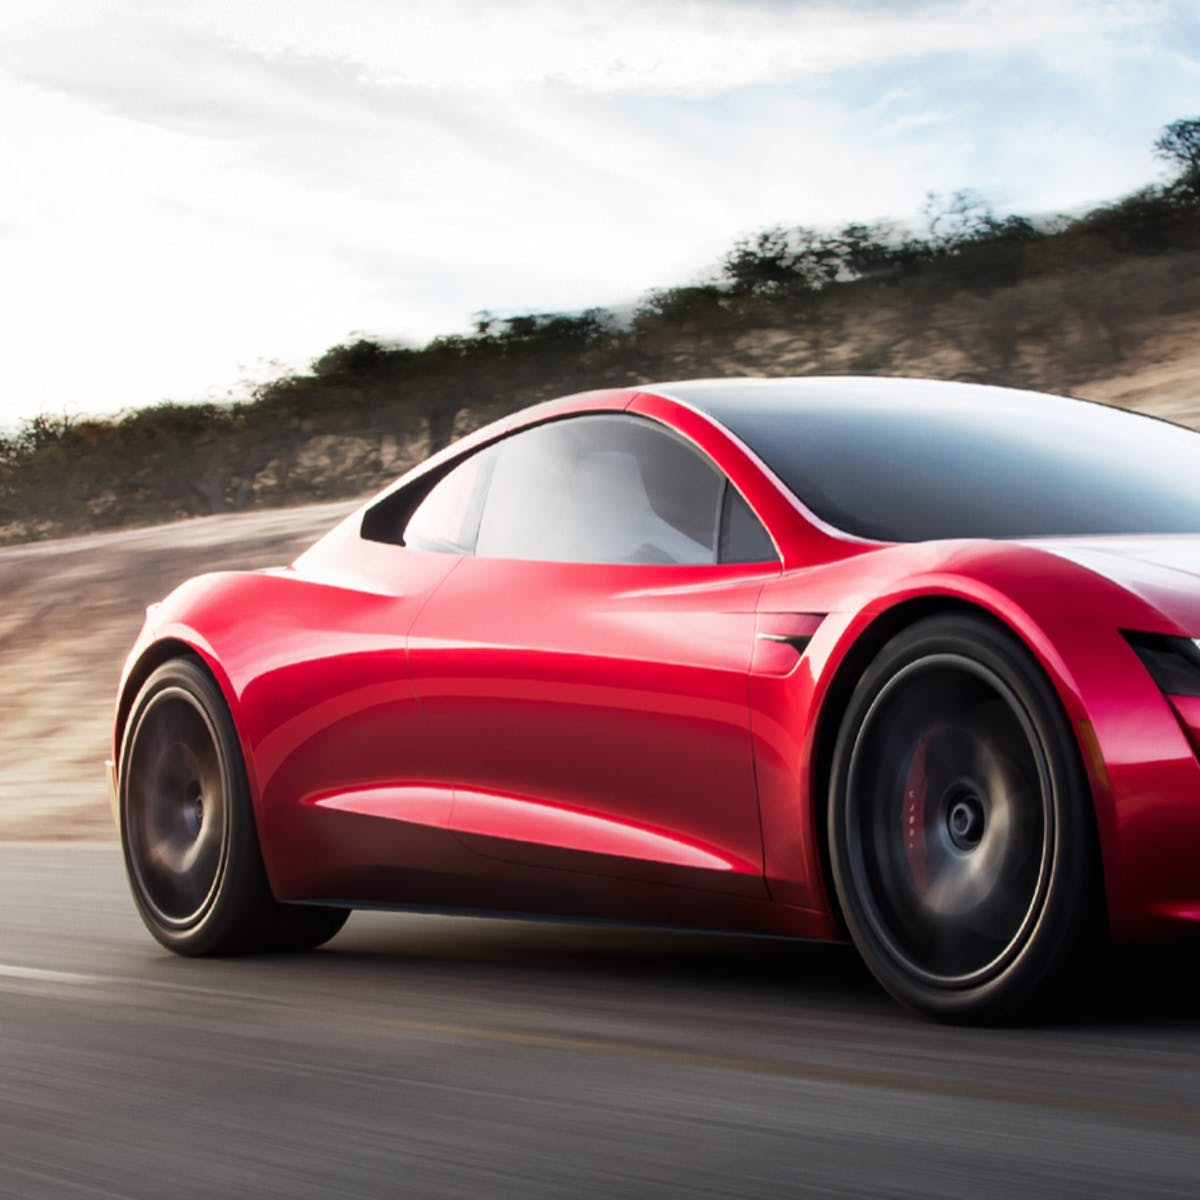 Tesla Roadster 2020: Elon Musk Hints SpaceX Extras Will Defy Expectations